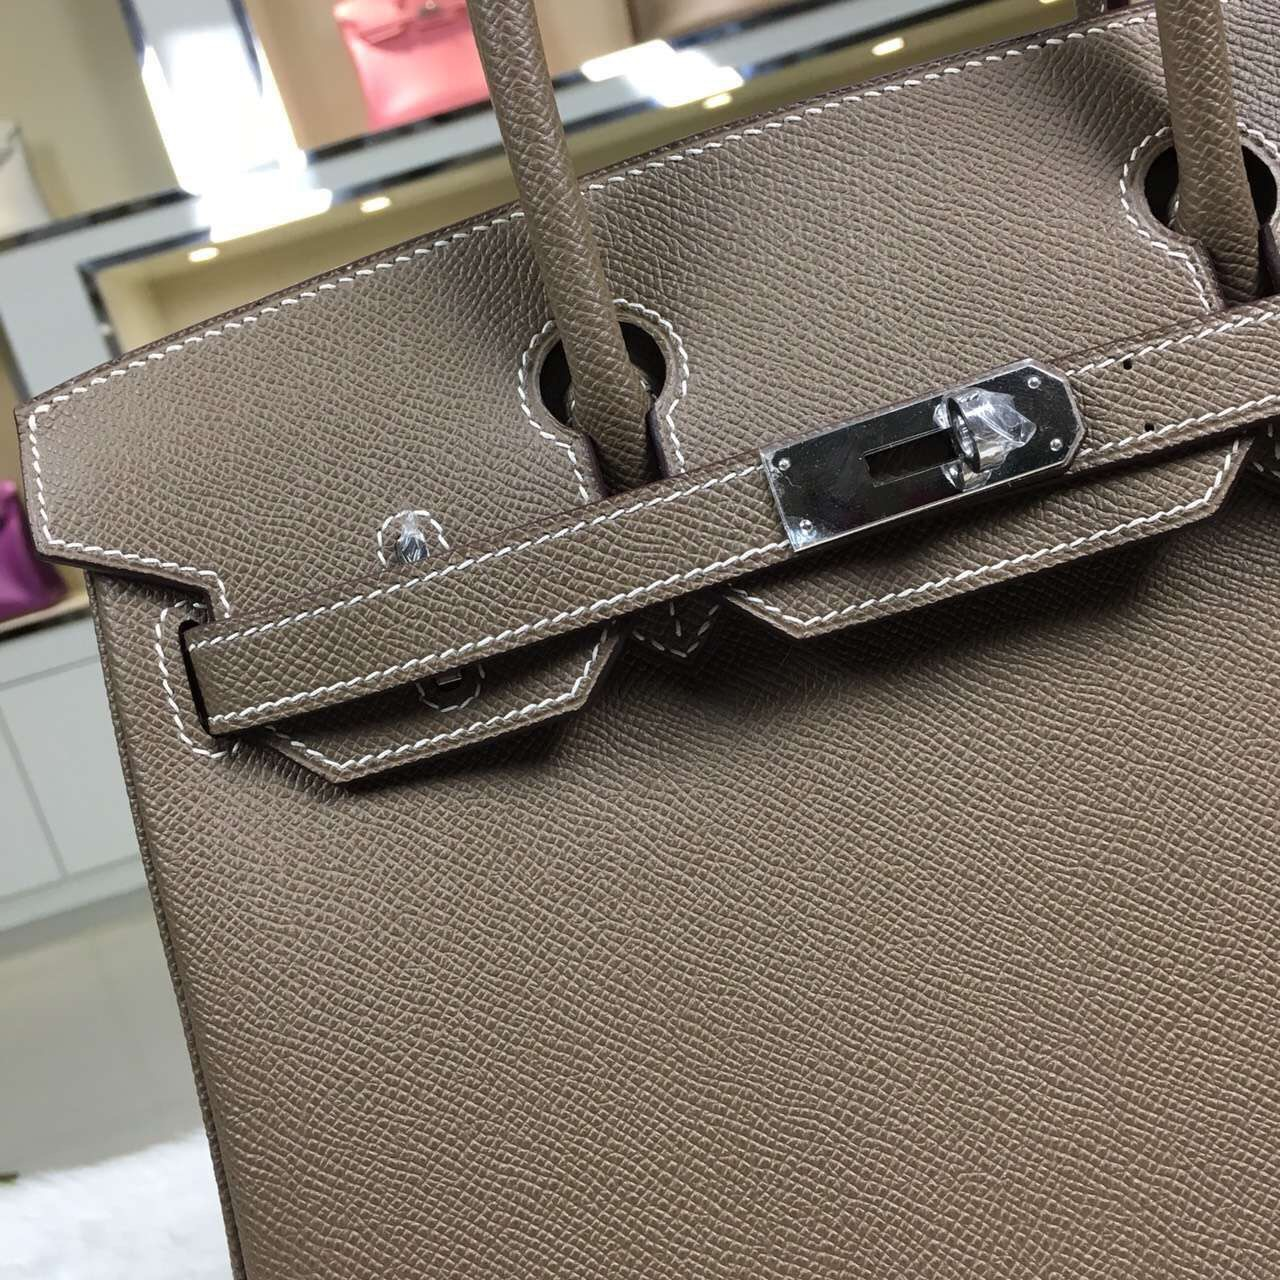 Hot Sale Hermes C81 Etoupe Grey Original Epsom Leather Birkin Bag 30cm